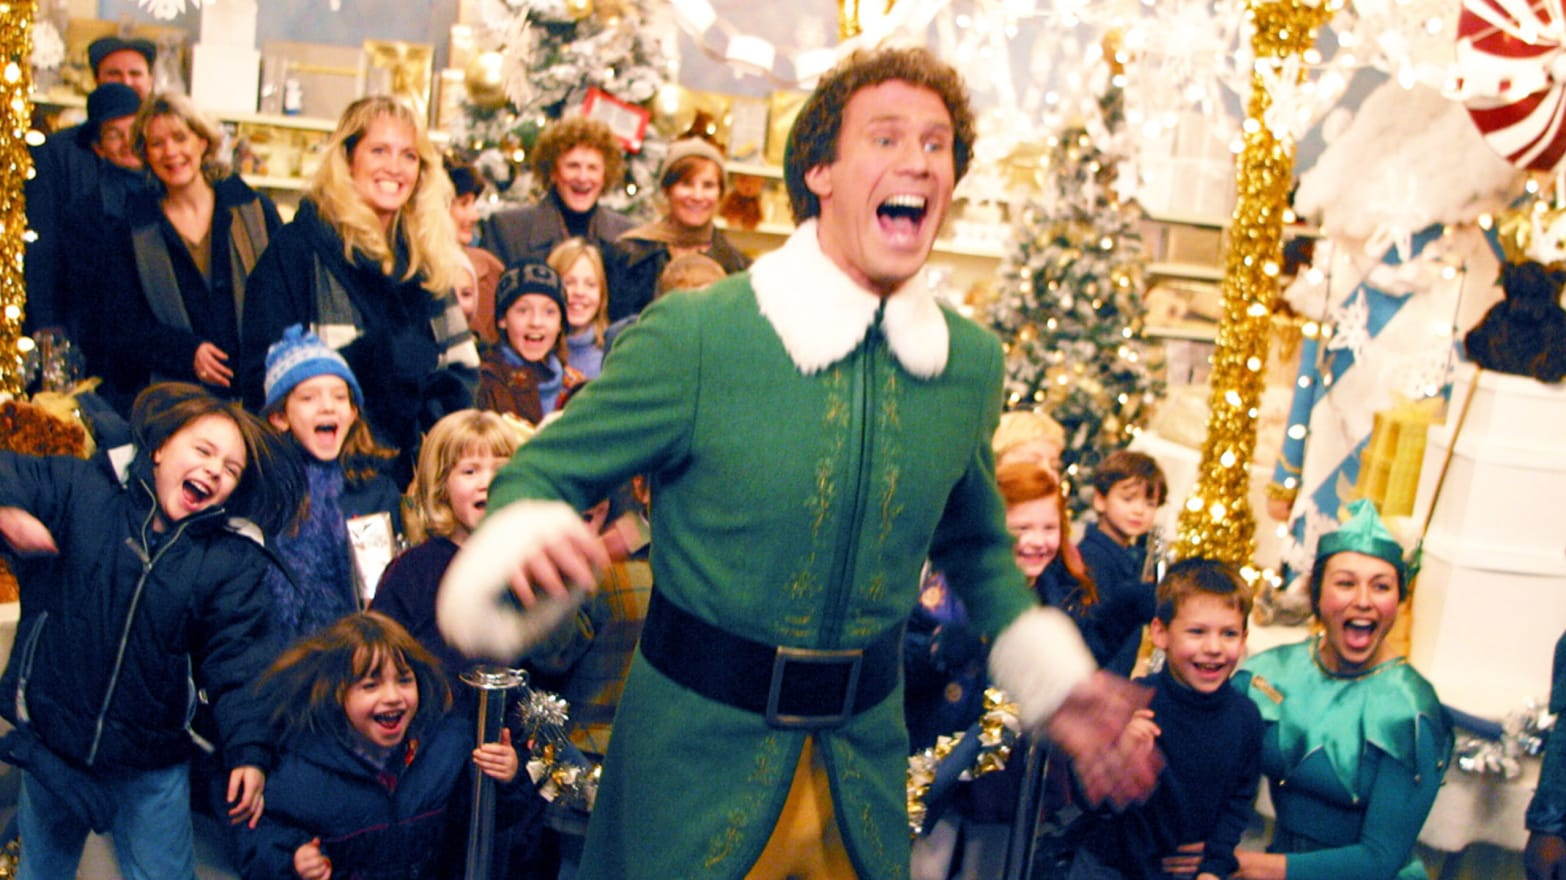 Best 'Elf' Quotes For Instagram